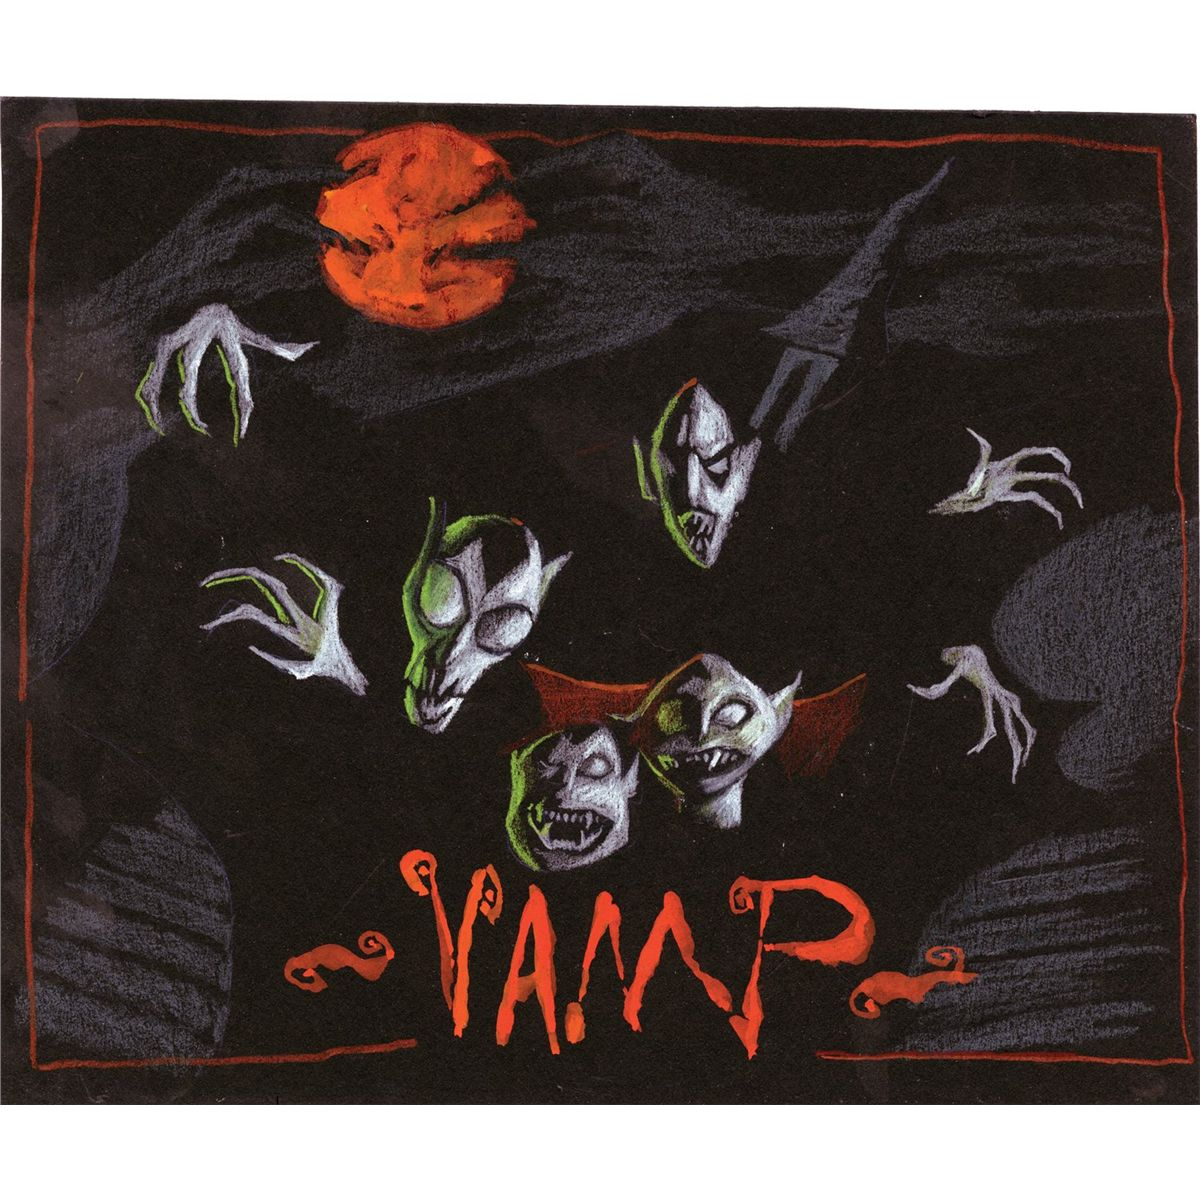 Original concept artwork for Vampires from The Nightmare Before ...